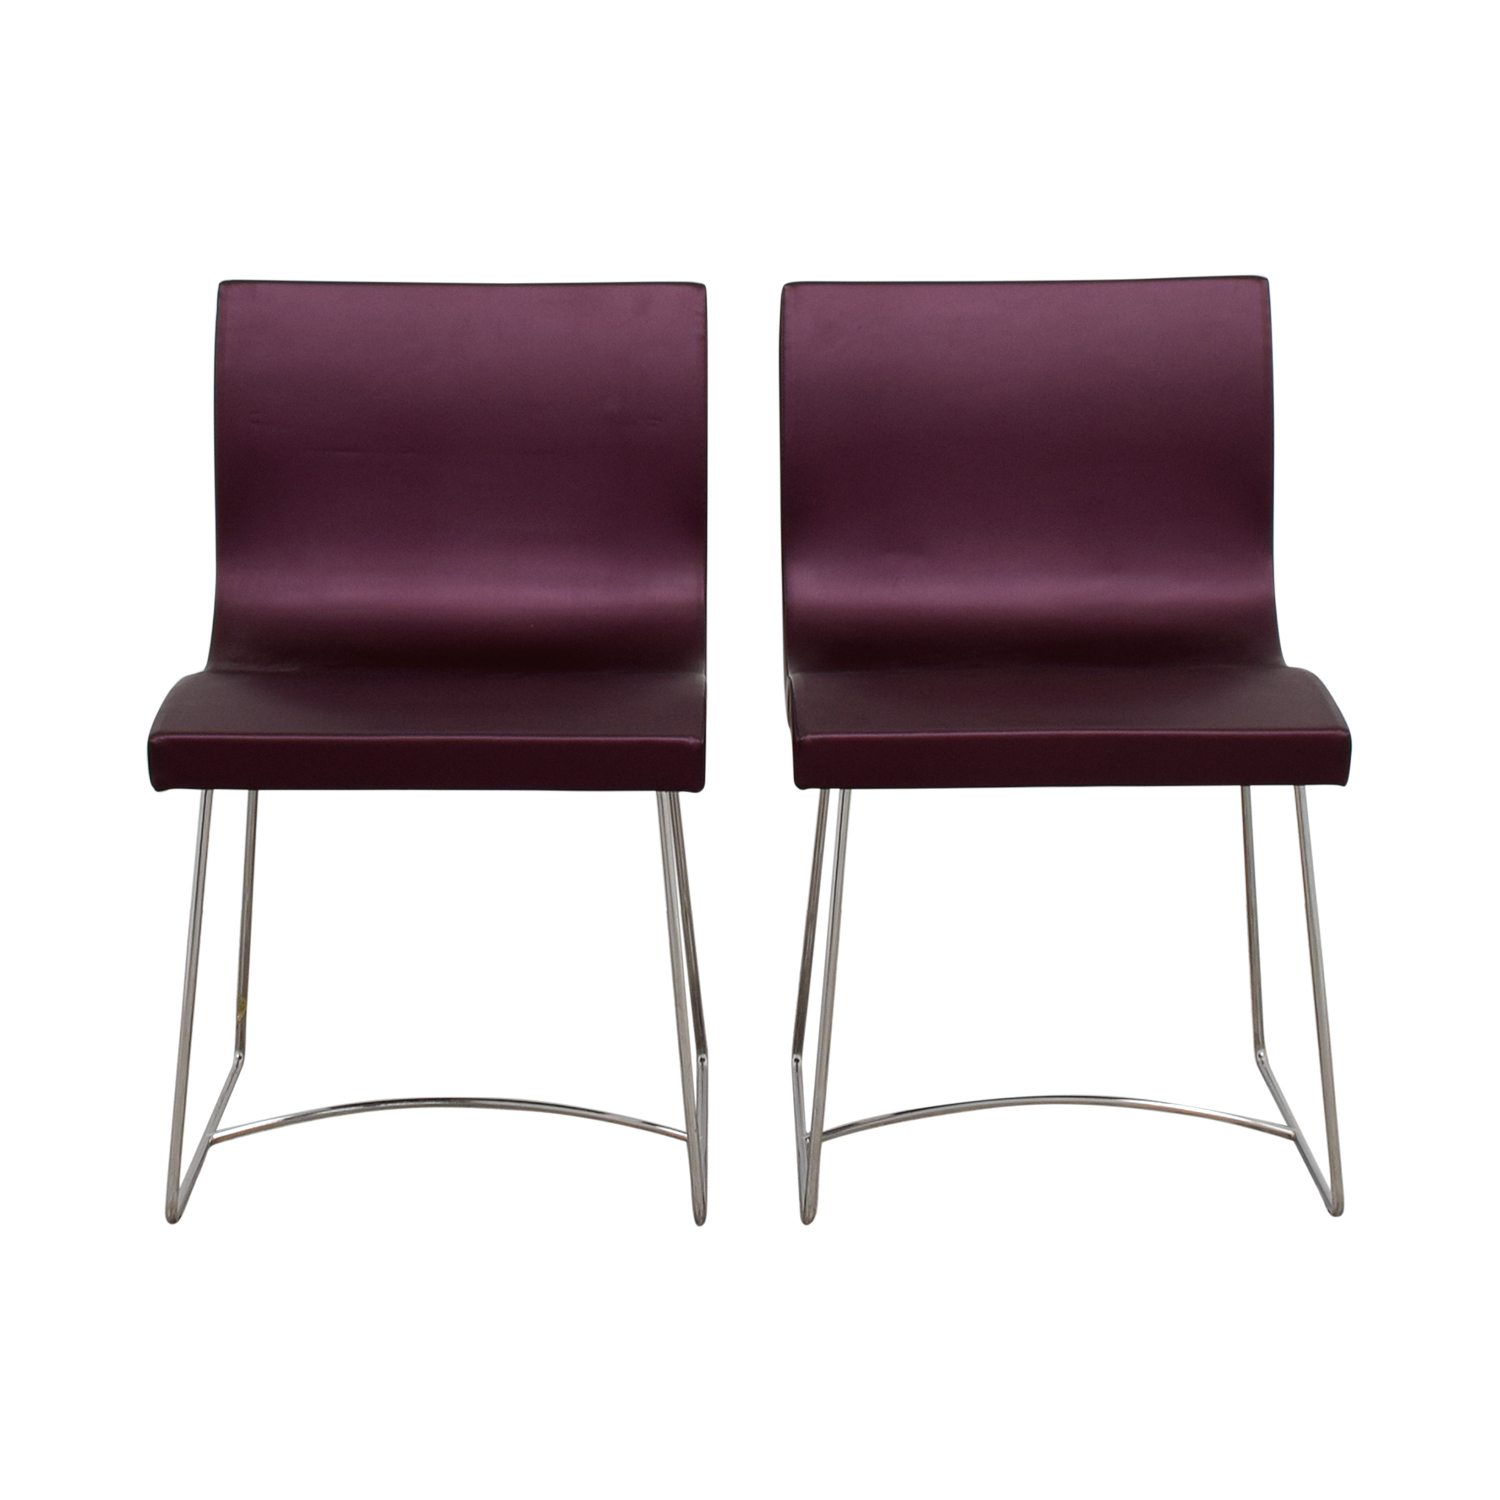 Ligne Roset Ligne Roset Purple Dining Chairs second hand